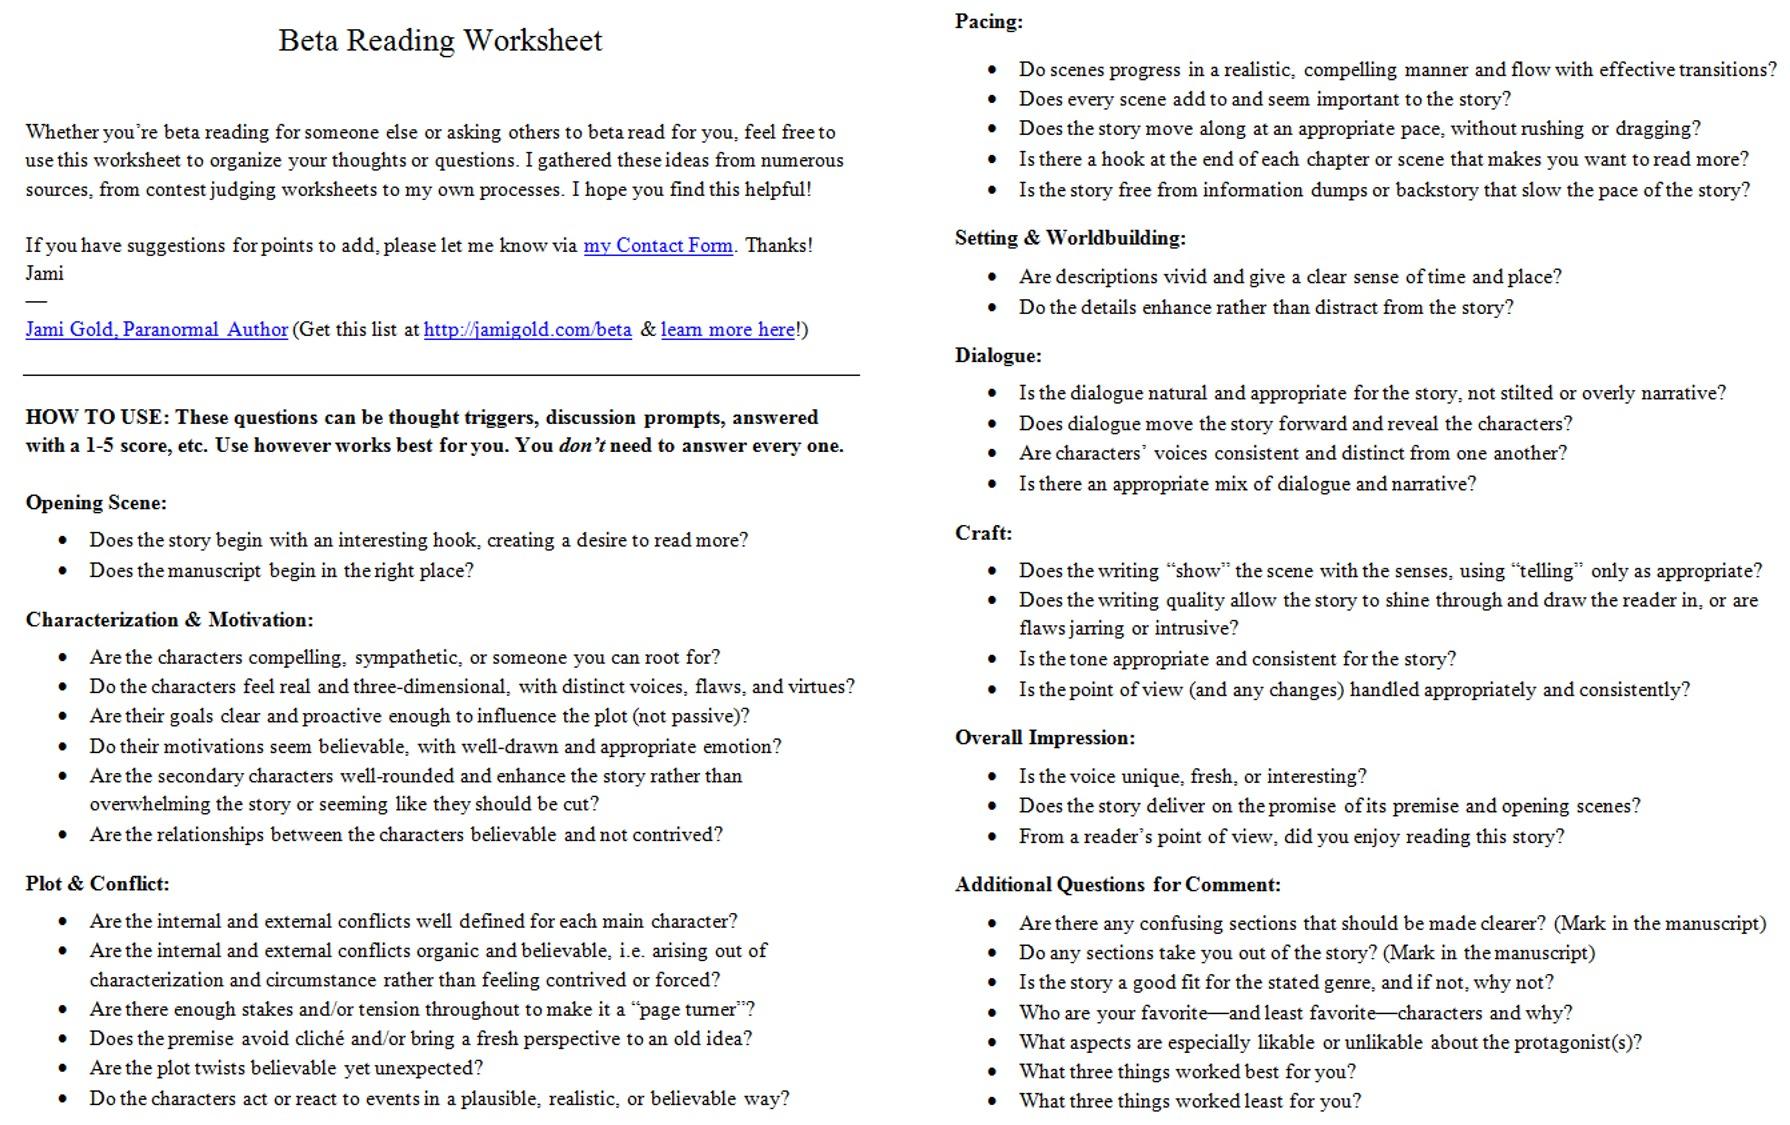 Weirdmailus  Unique Worksheets For Writers  Jami Gold Paranormal Author With Extraordinary Screen Shot Of The Twopage Beta Reading Worksheet With Nice Mathematical Induction Worksheet Also Th Grade Math Subtraction Worksheets In Addition Reading A Line Graph Worksheet And Food Safety Worksheet As Well As Informational Text Features Worksheets Additionally Decimals Number Line Worksheet From Jamigoldcom With Weirdmailus  Extraordinary Worksheets For Writers  Jami Gold Paranormal Author With Nice Screen Shot Of The Twopage Beta Reading Worksheet And Unique Mathematical Induction Worksheet Also Th Grade Math Subtraction Worksheets In Addition Reading A Line Graph Worksheet From Jamigoldcom